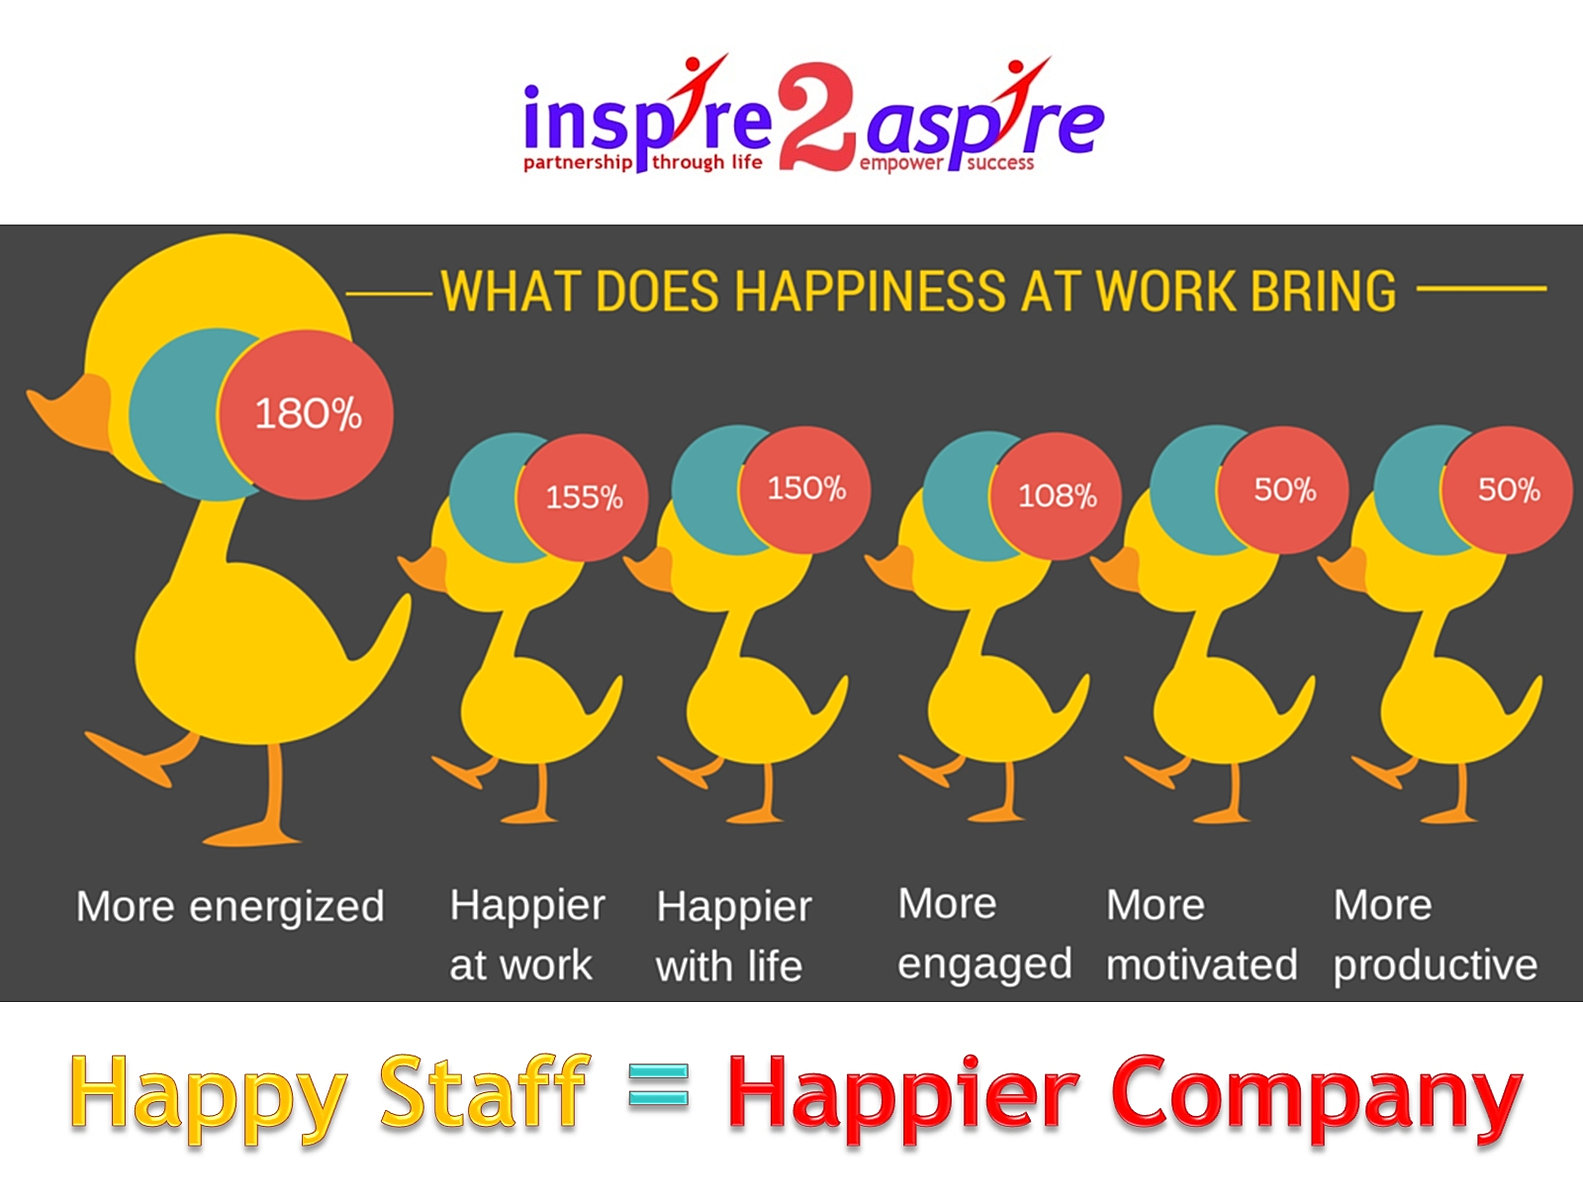 Happiness lunch-n-learn seminars workshops team building activities